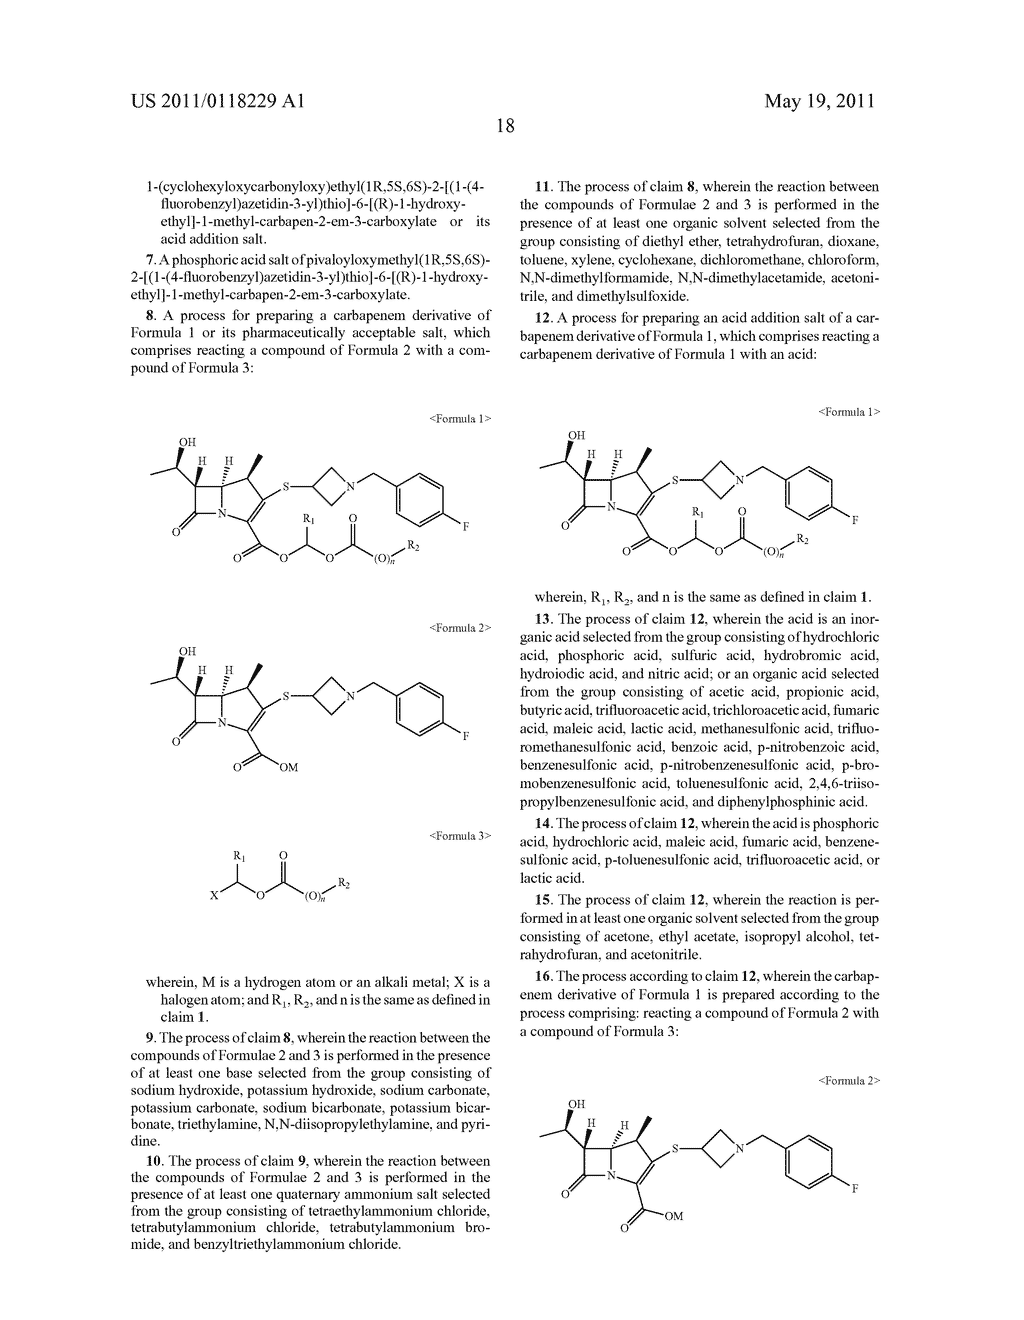 2-ARYLMETHYLAZETIDINE-CARBAPENEM-3-CARBOXYLIC ACID ESTER DERIVATIVE OR ITS SALT, PROCESS FOR THE PREPARATION THEREOF AND PHARMACEUTICAL COMPOSITION COMPRISING THE SAME - diagram, schematic, and image 20